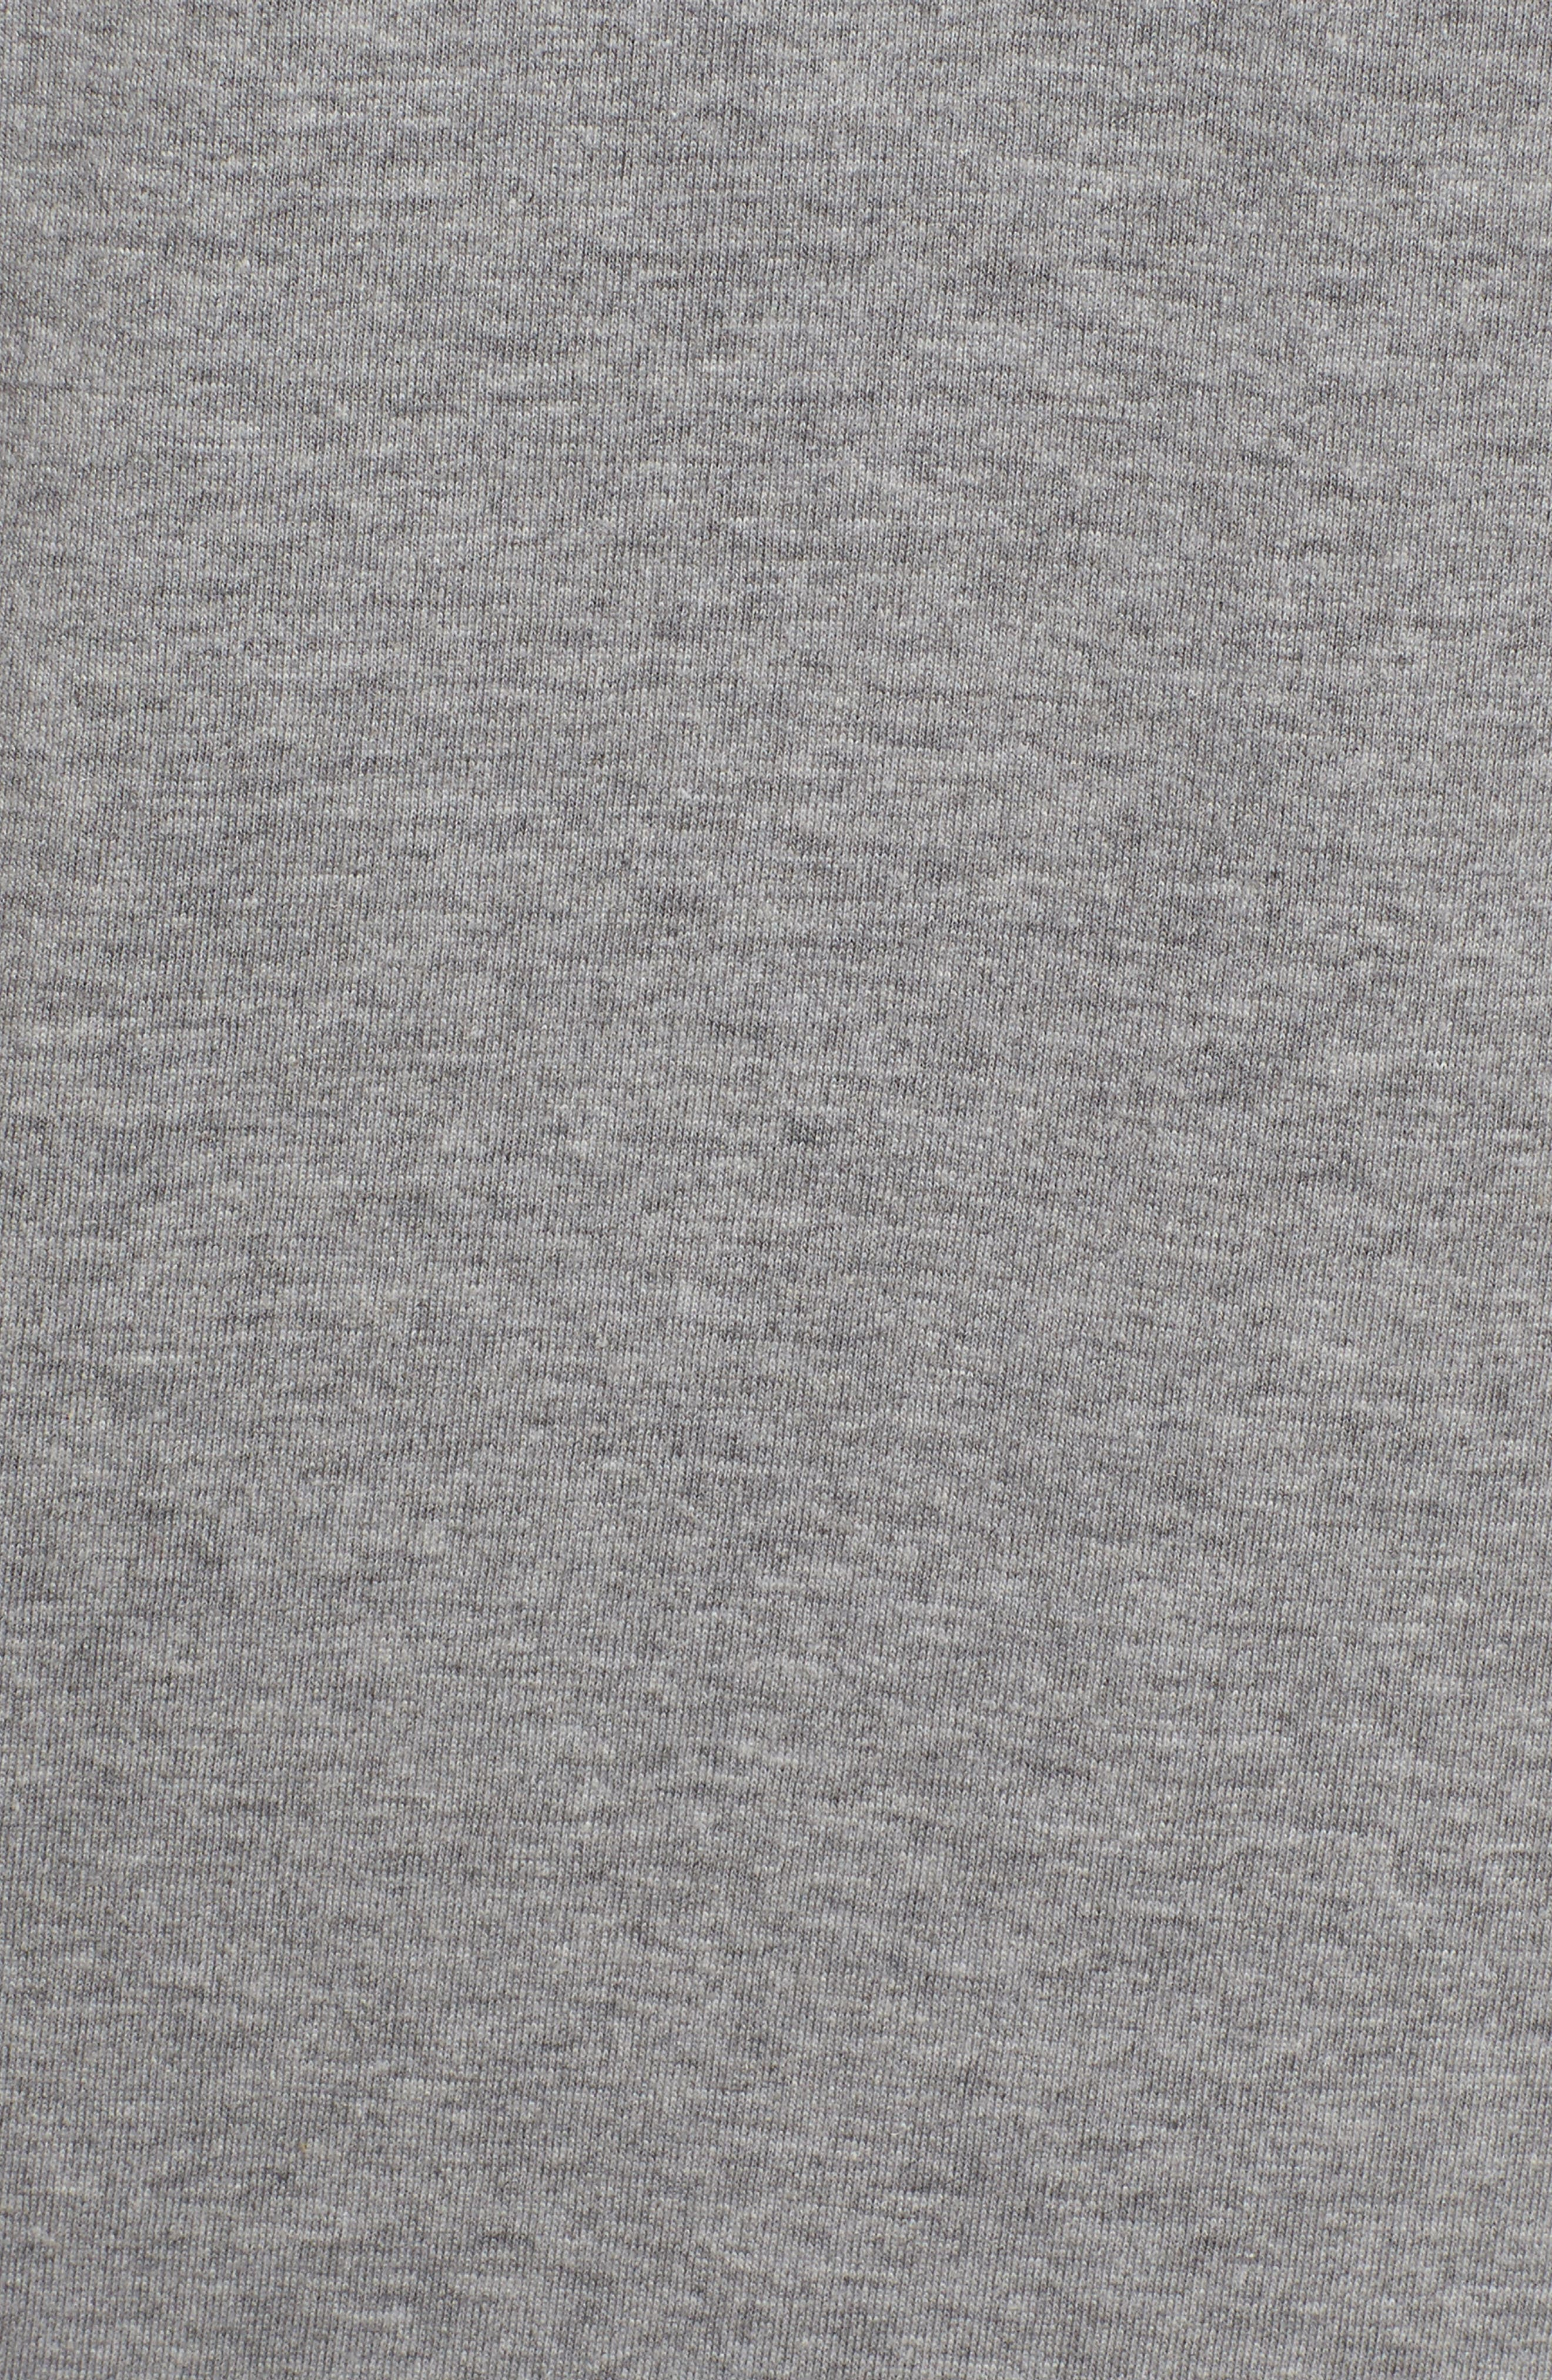 Fringe Watching Graphic T-Shirt,                             Alternate thumbnail 5, color,                             Grey Heather